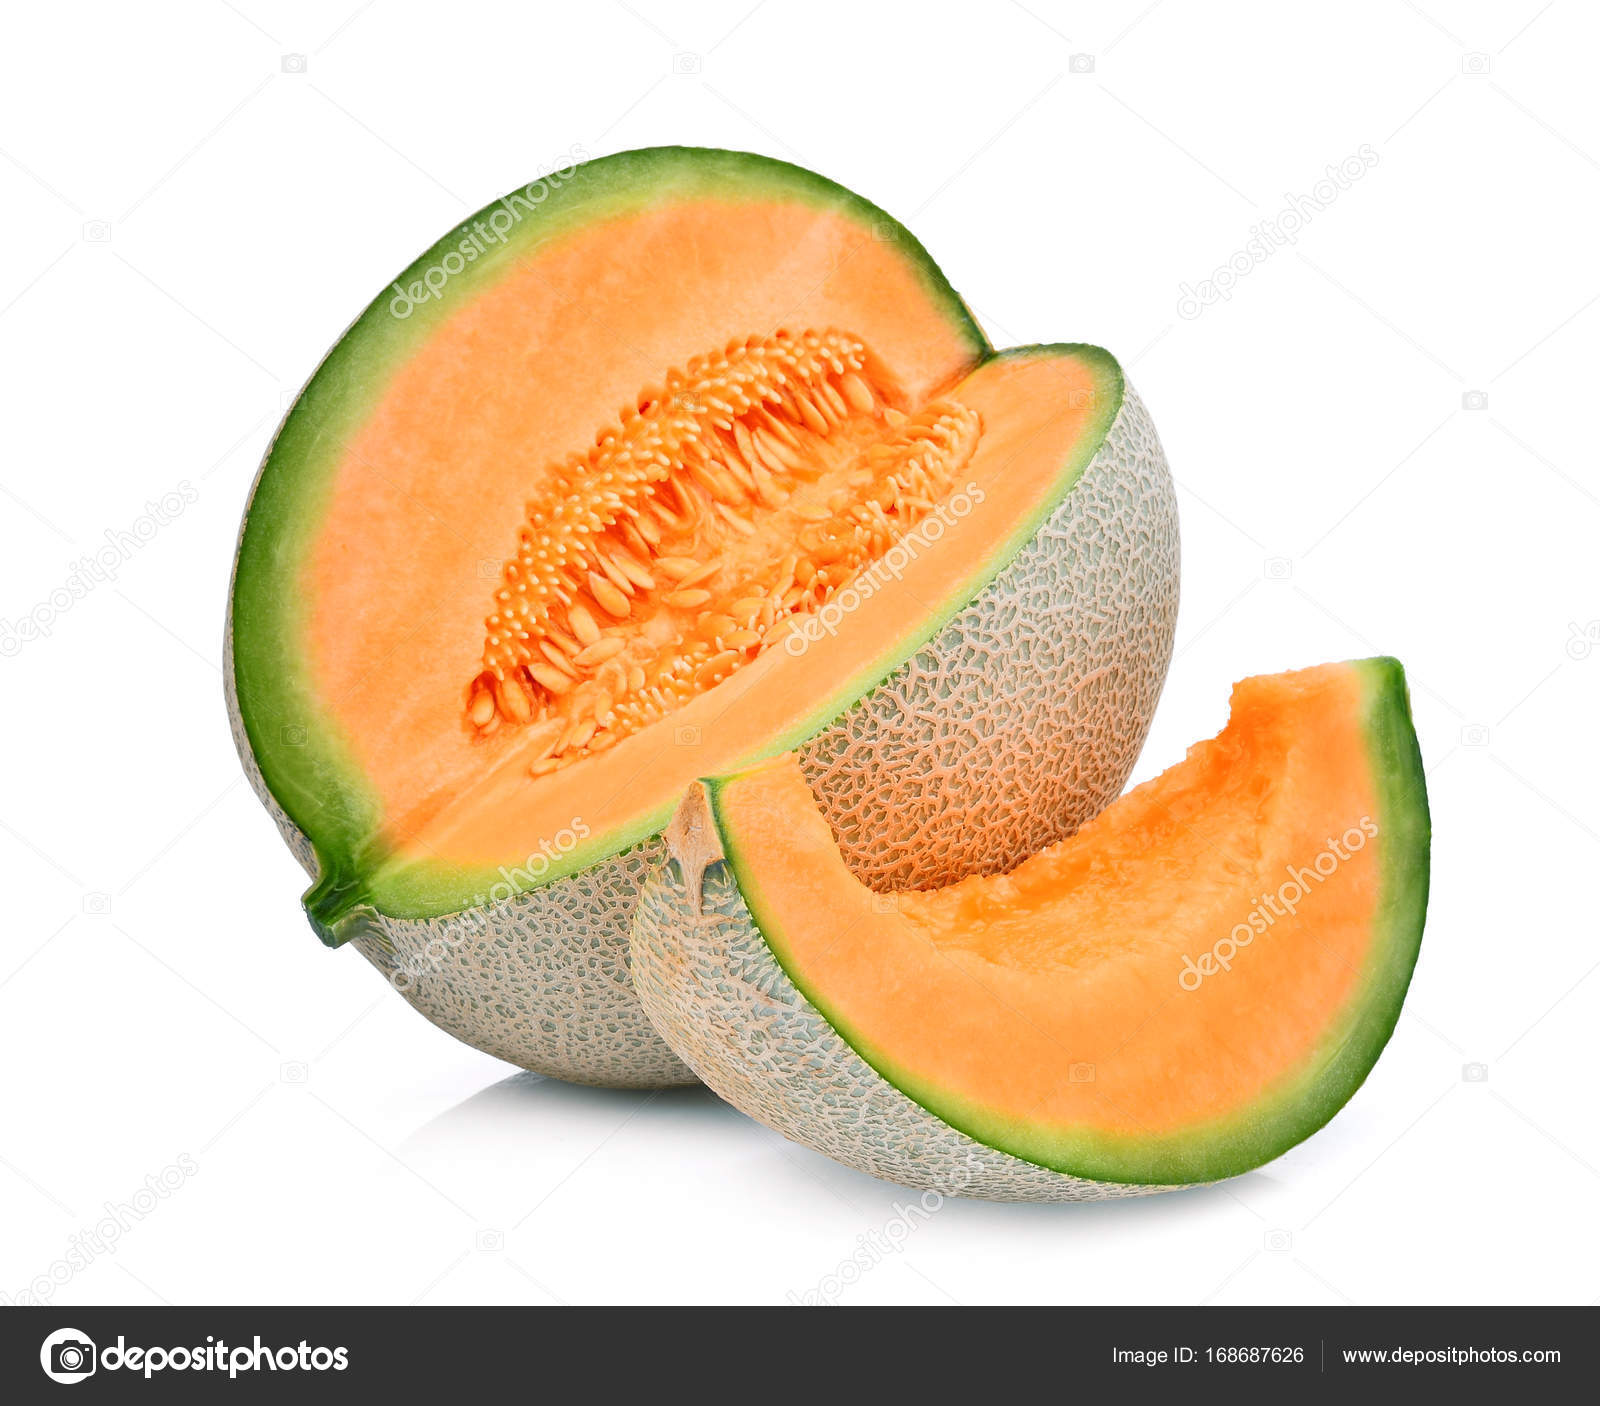 Slice Of Japanese Melons Orange Melon Or Cantaloupe Melon With Stock Photo C Boonchuay1970 168687626 Health organic orange cantaloupe all cut up#orange, #organic, #health, #cut. https depositphotos com 168687626 stock photo slice of japanese melons orange html